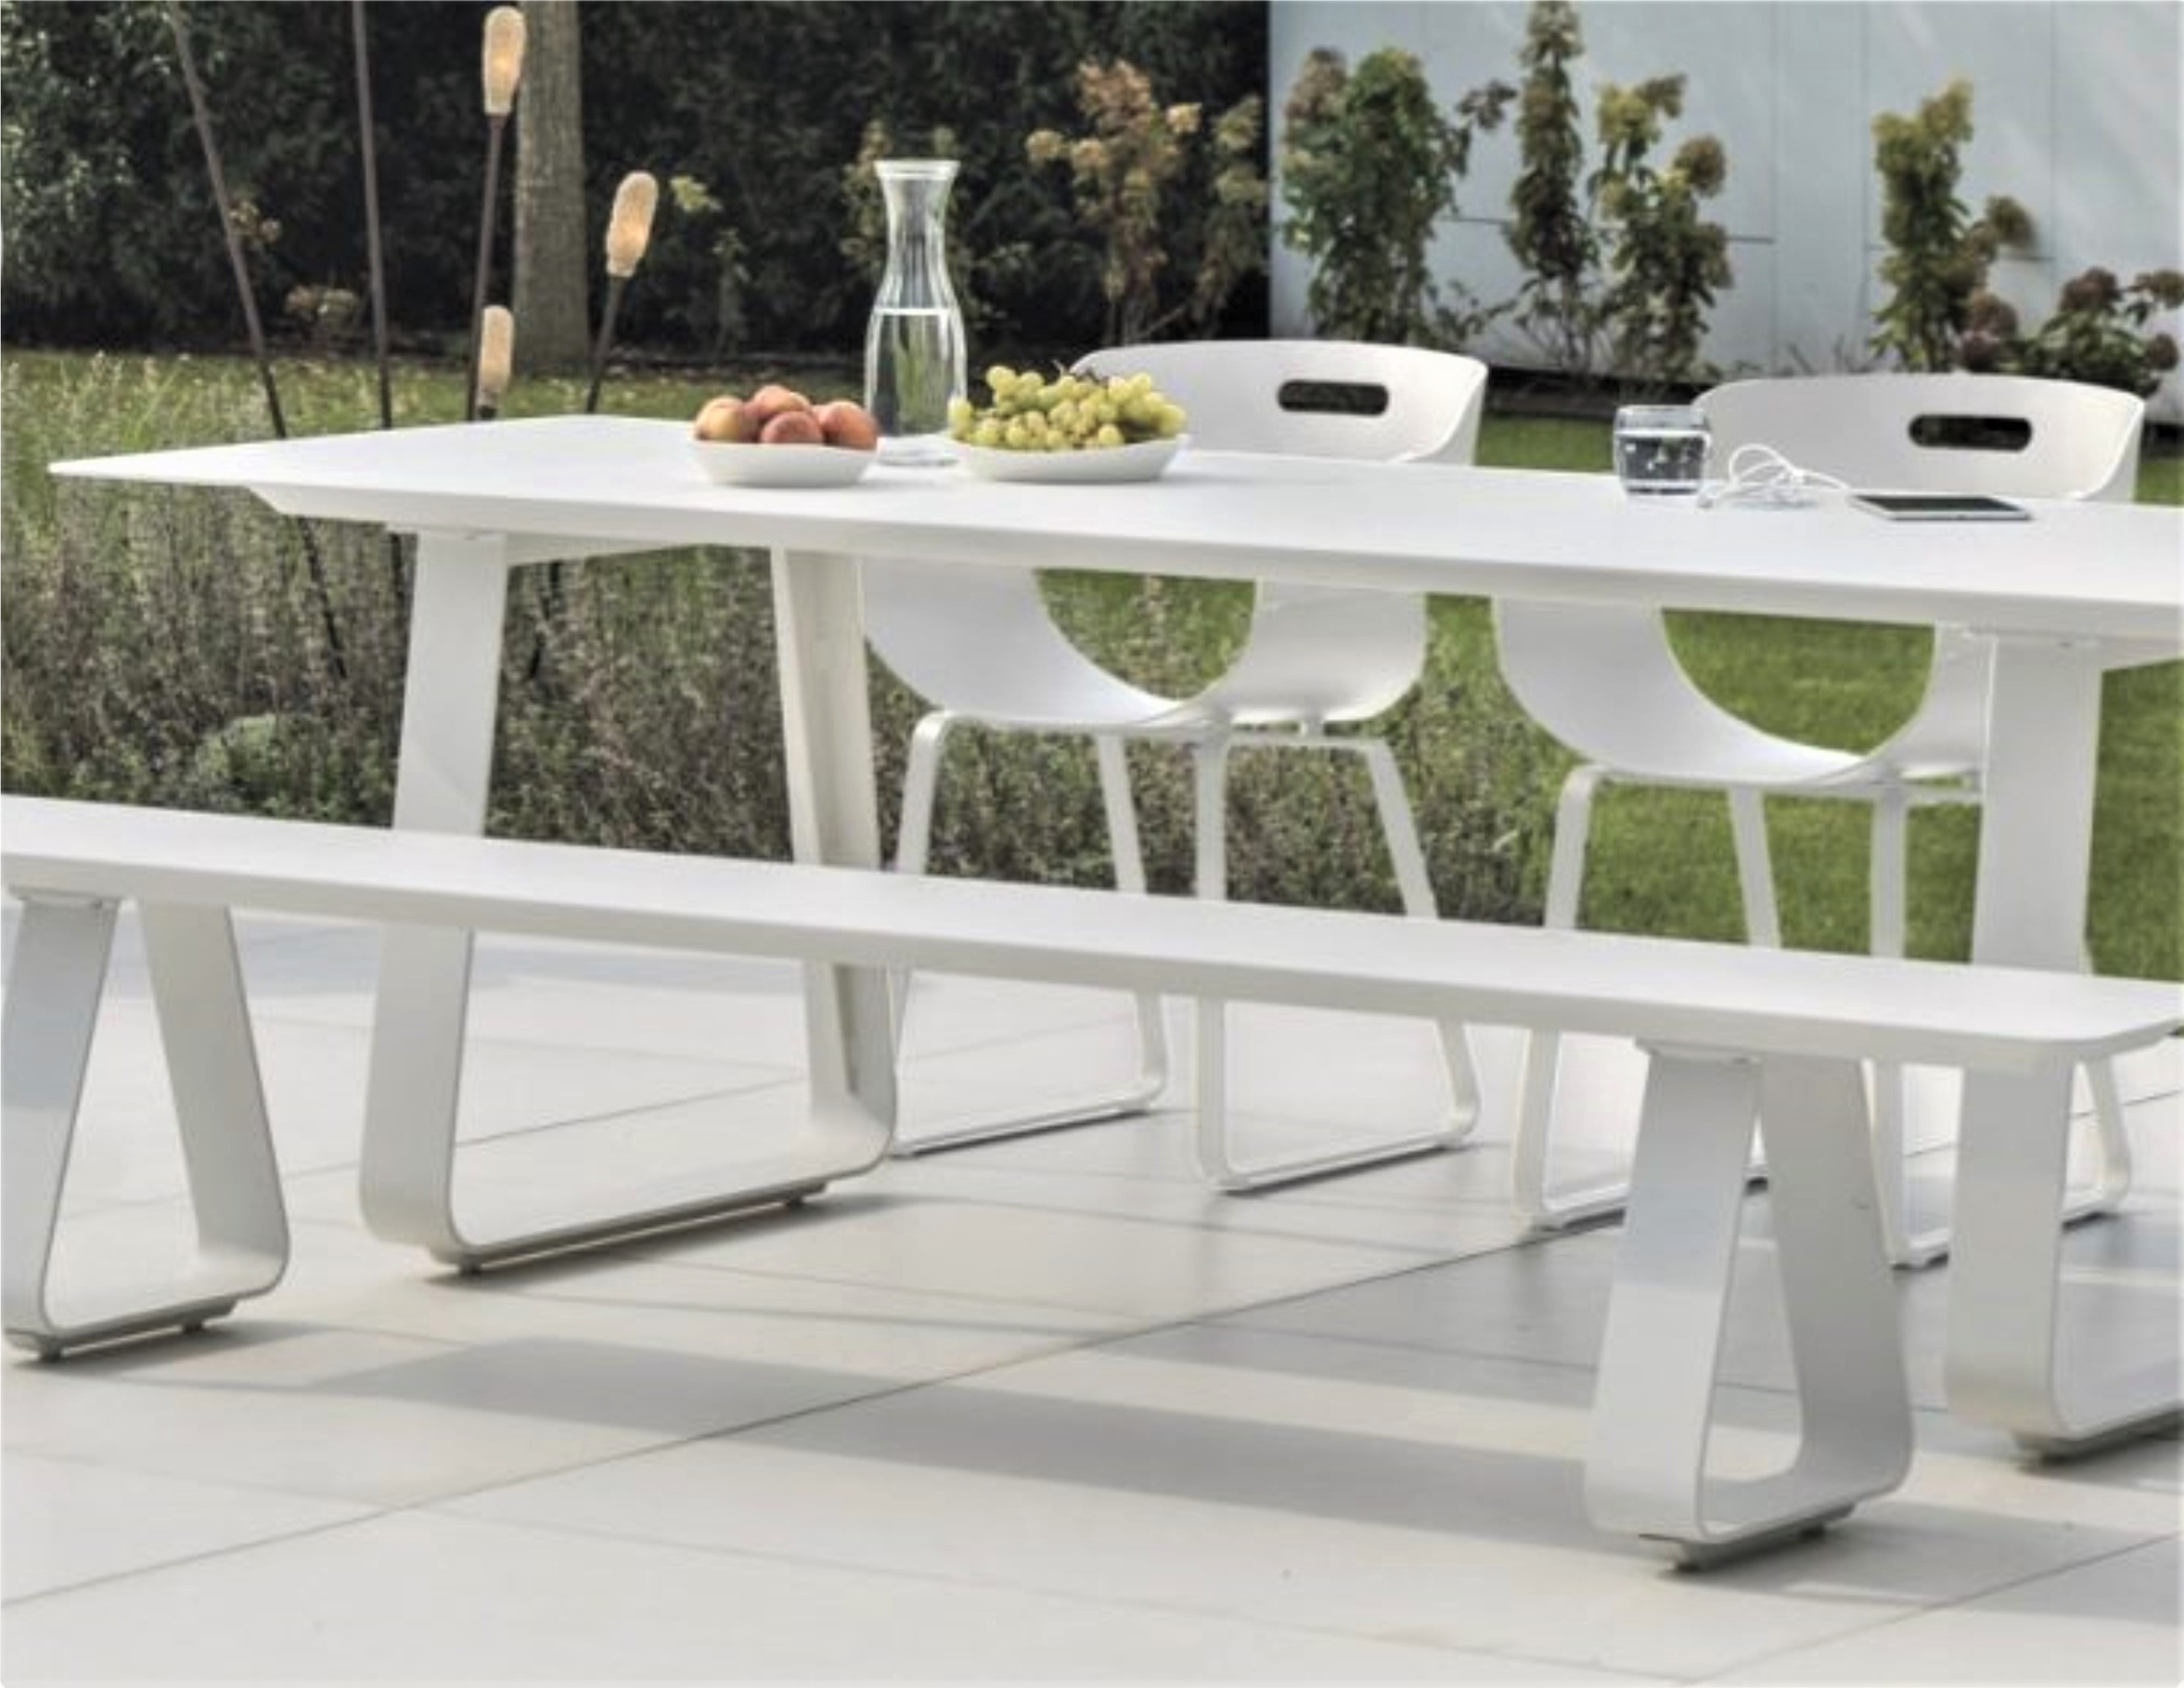 Alfresco Dining Table With Picnic Bench Sitting